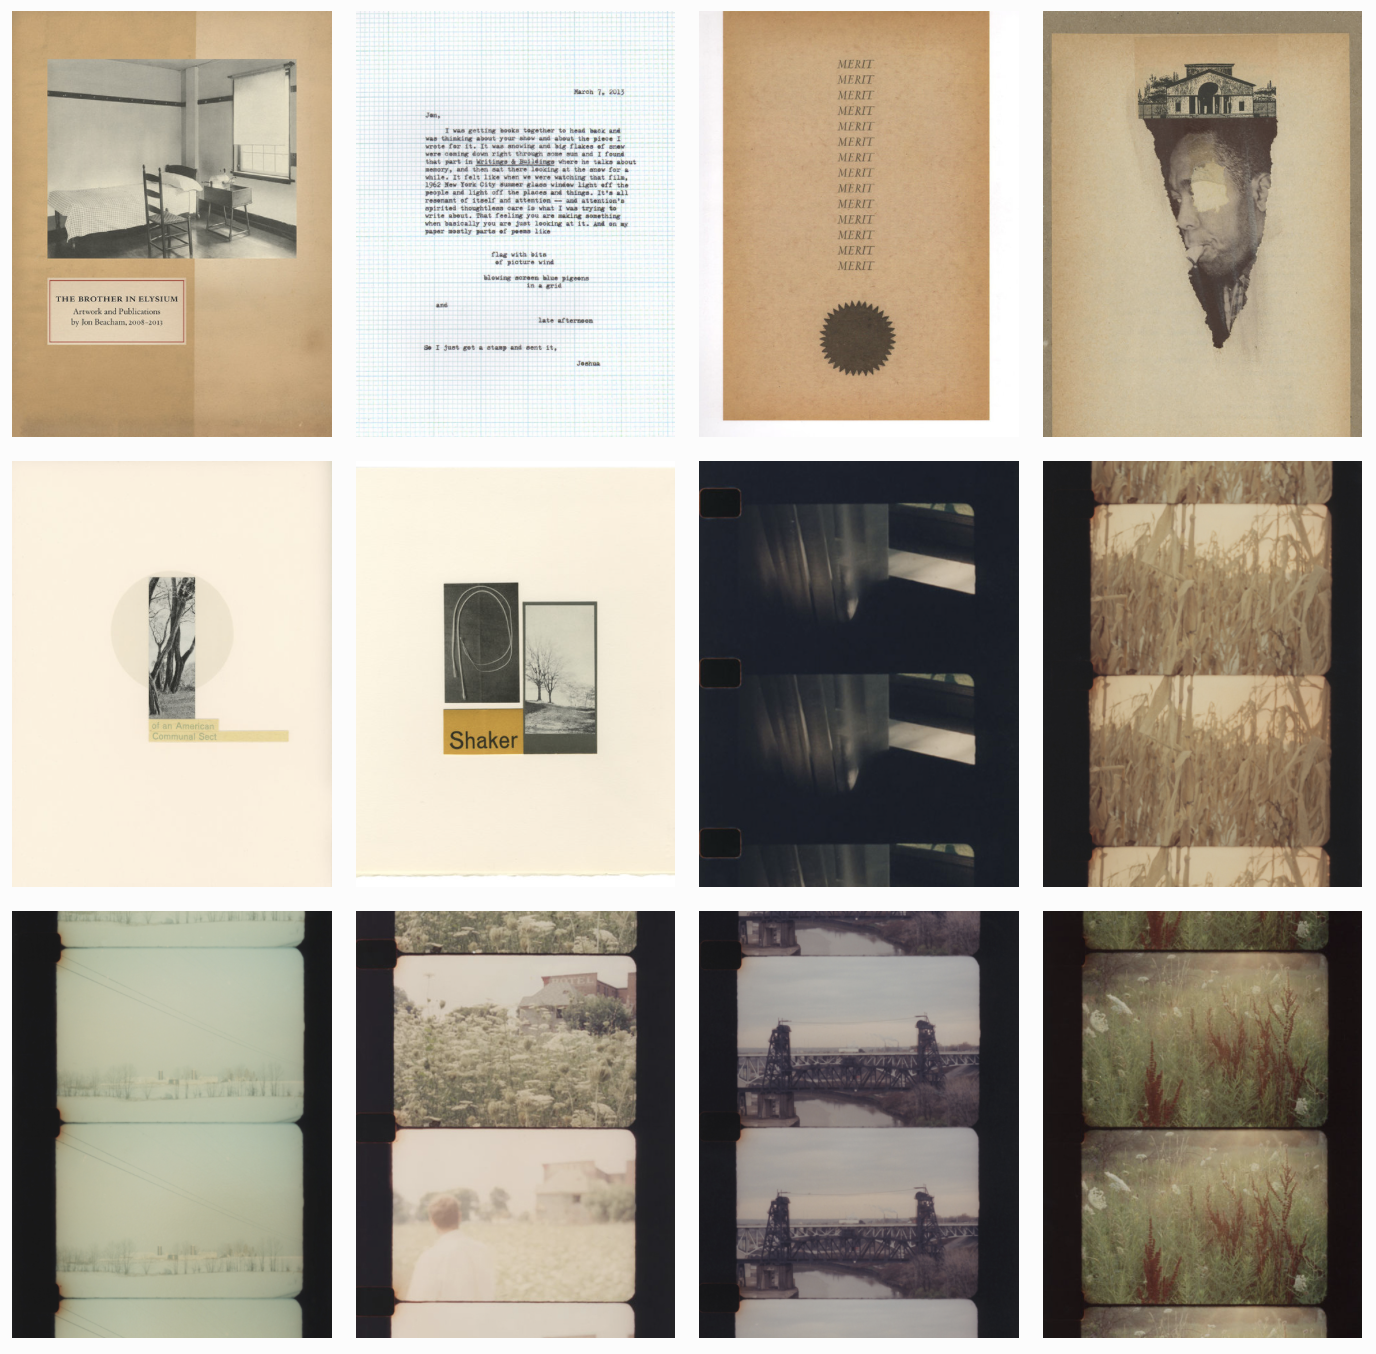 The Brother In Elysium: Artwork and Publications by Jon Beacham, 2008–2013